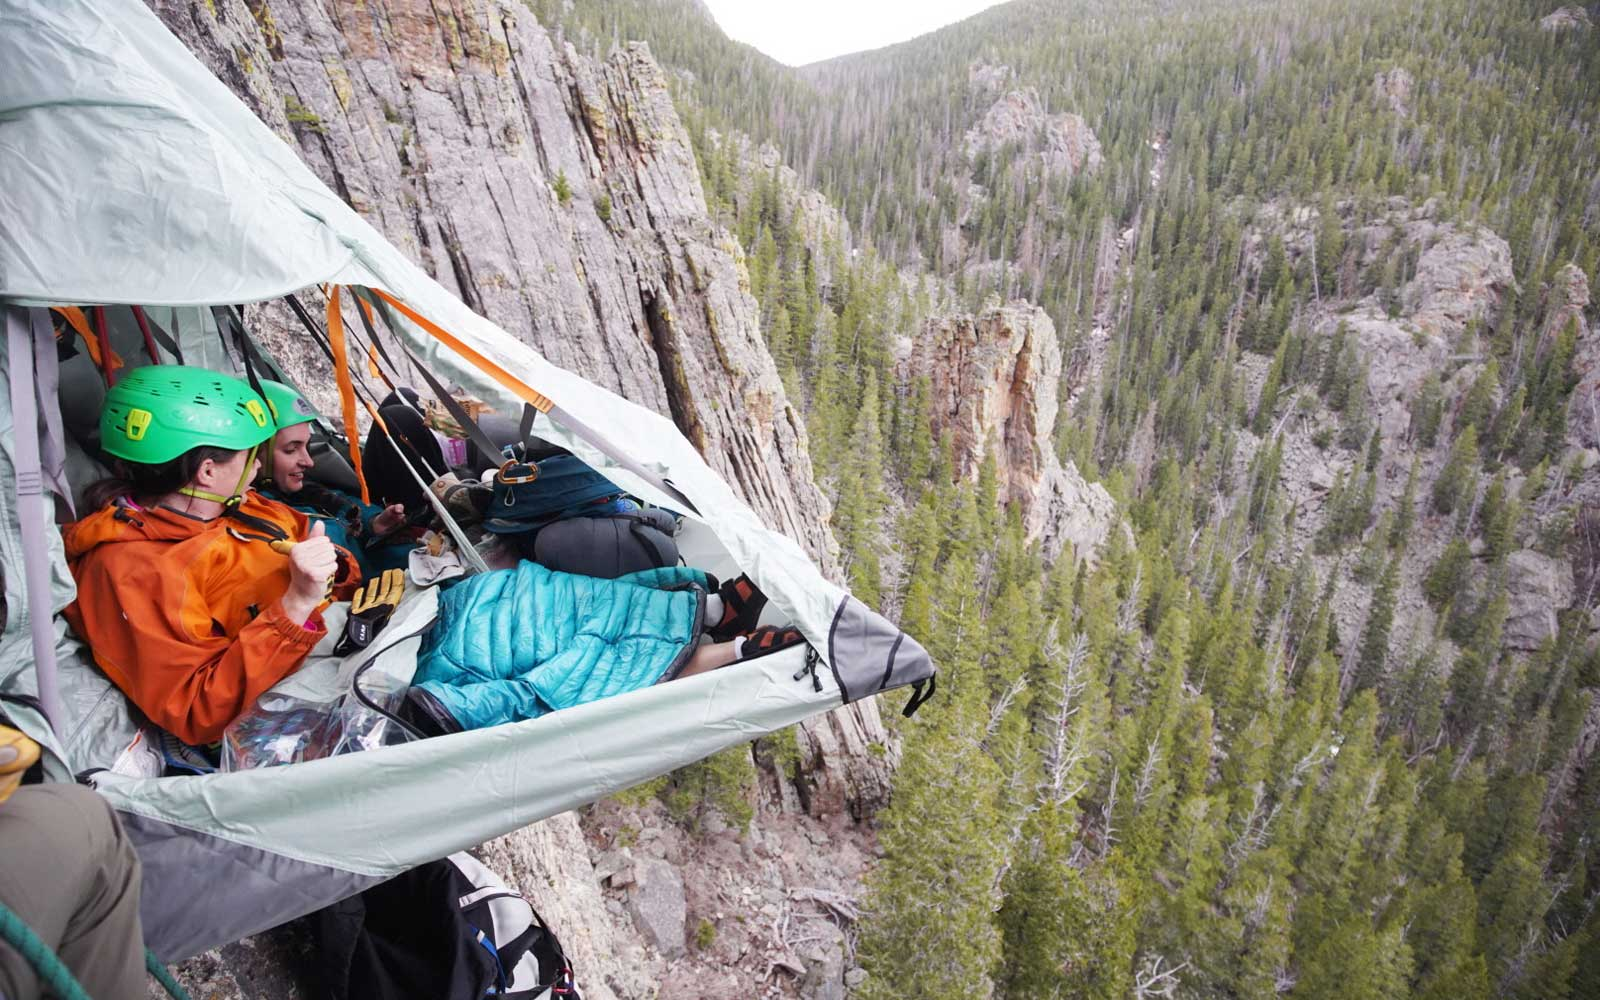 Cliff Camping with Airbnb Experiences